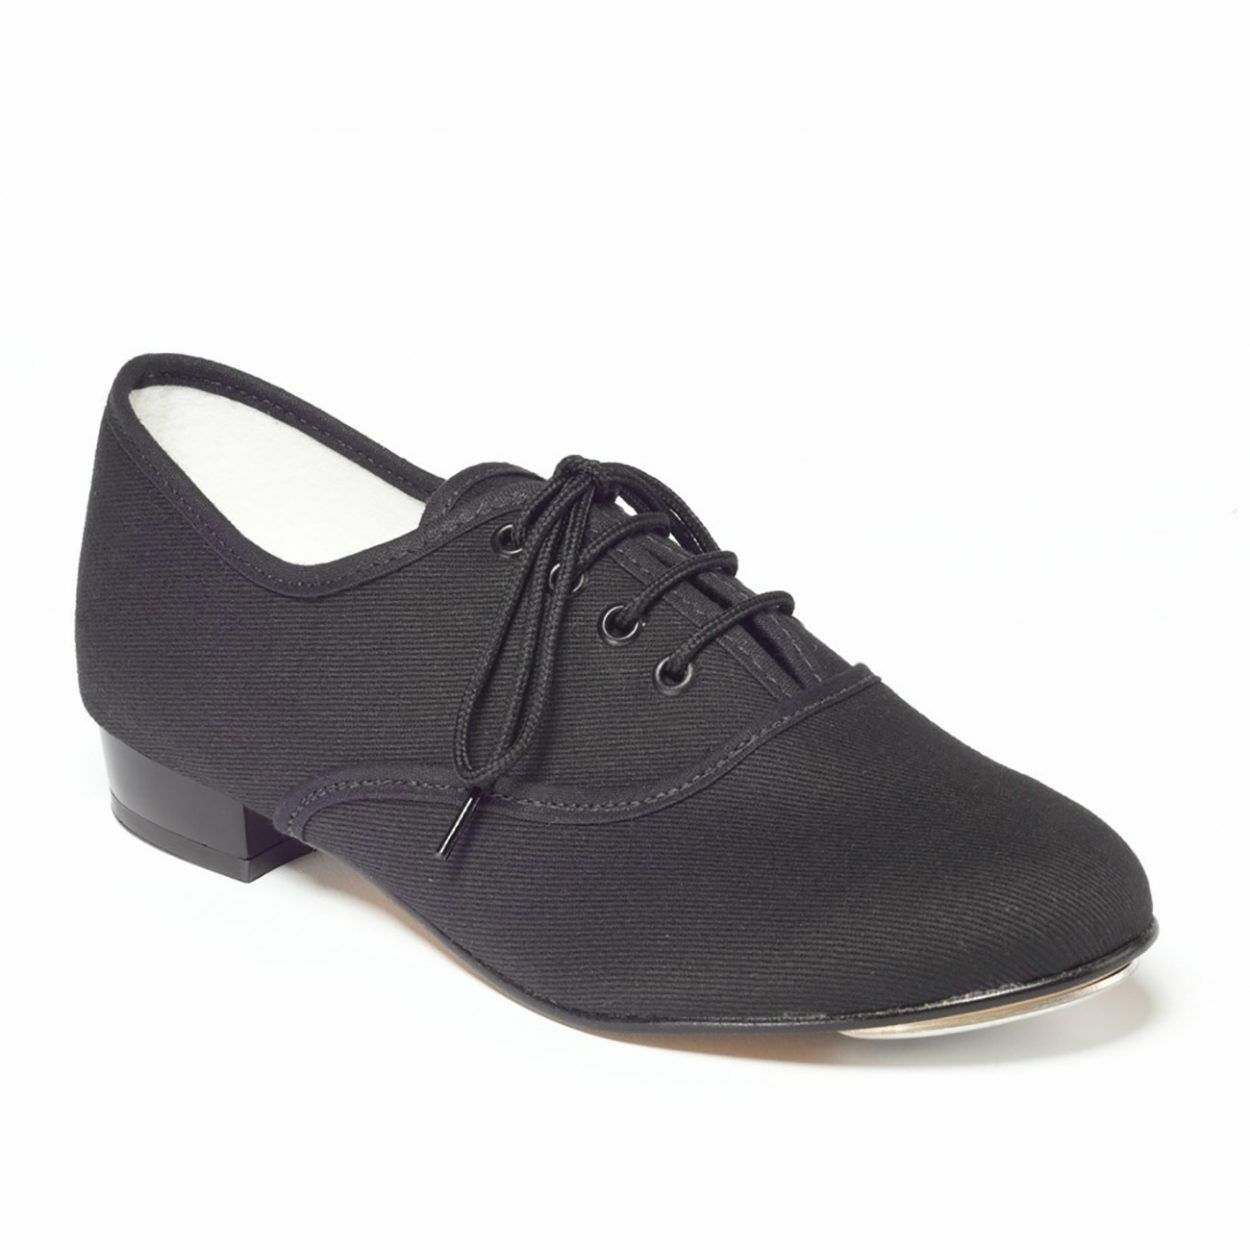 b0ys mens black oxford canvas tap shoes toe taps fitted